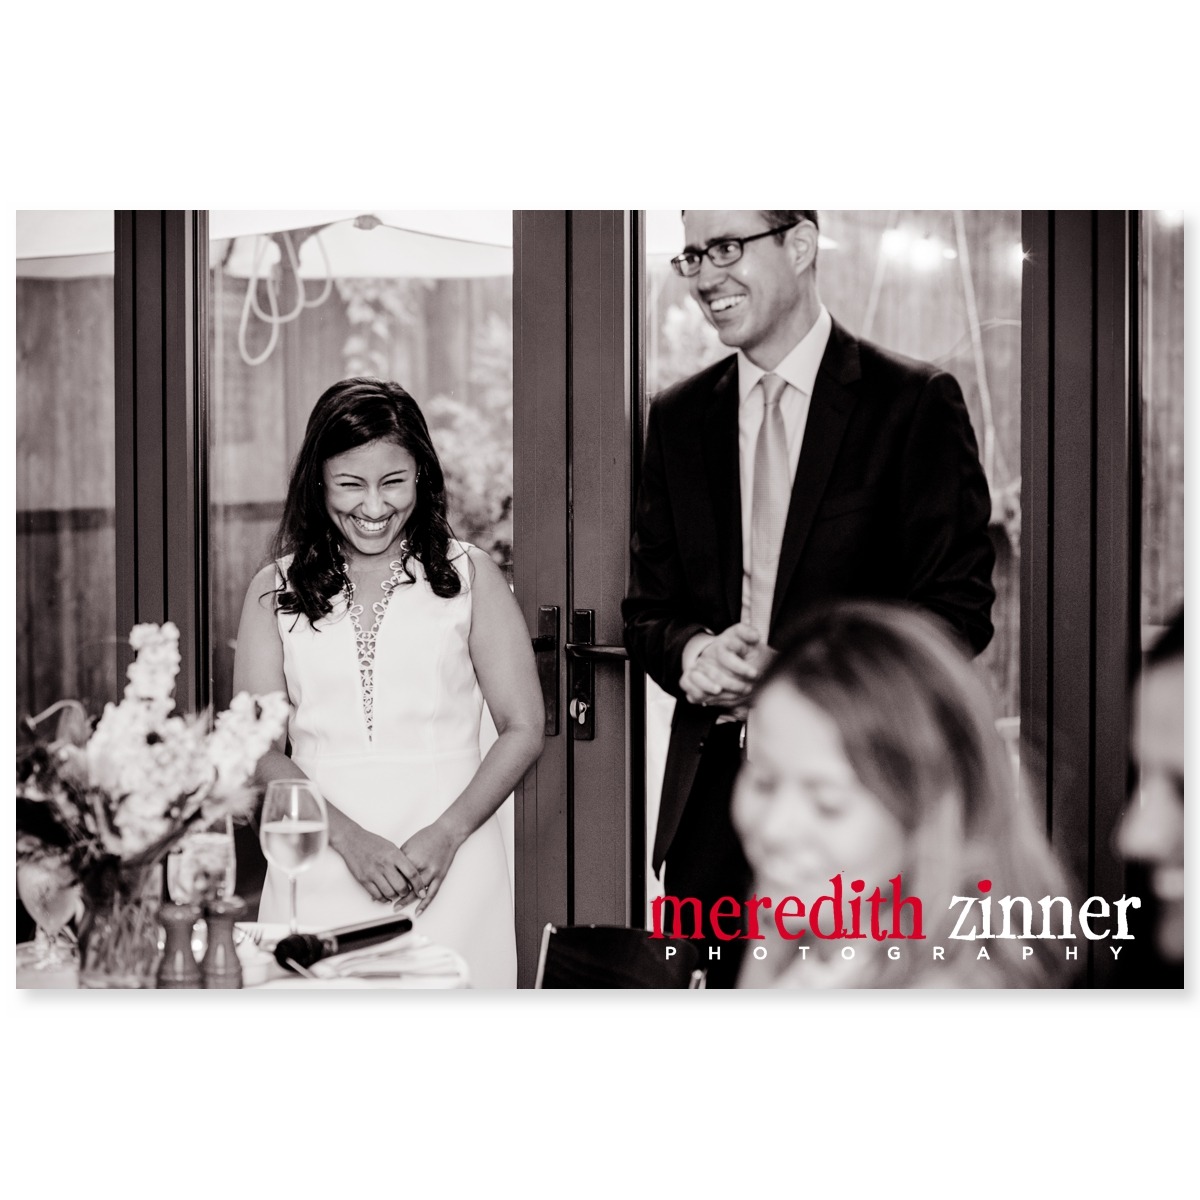 Meredith_Zinner_Photography_StilesCelebration_0179